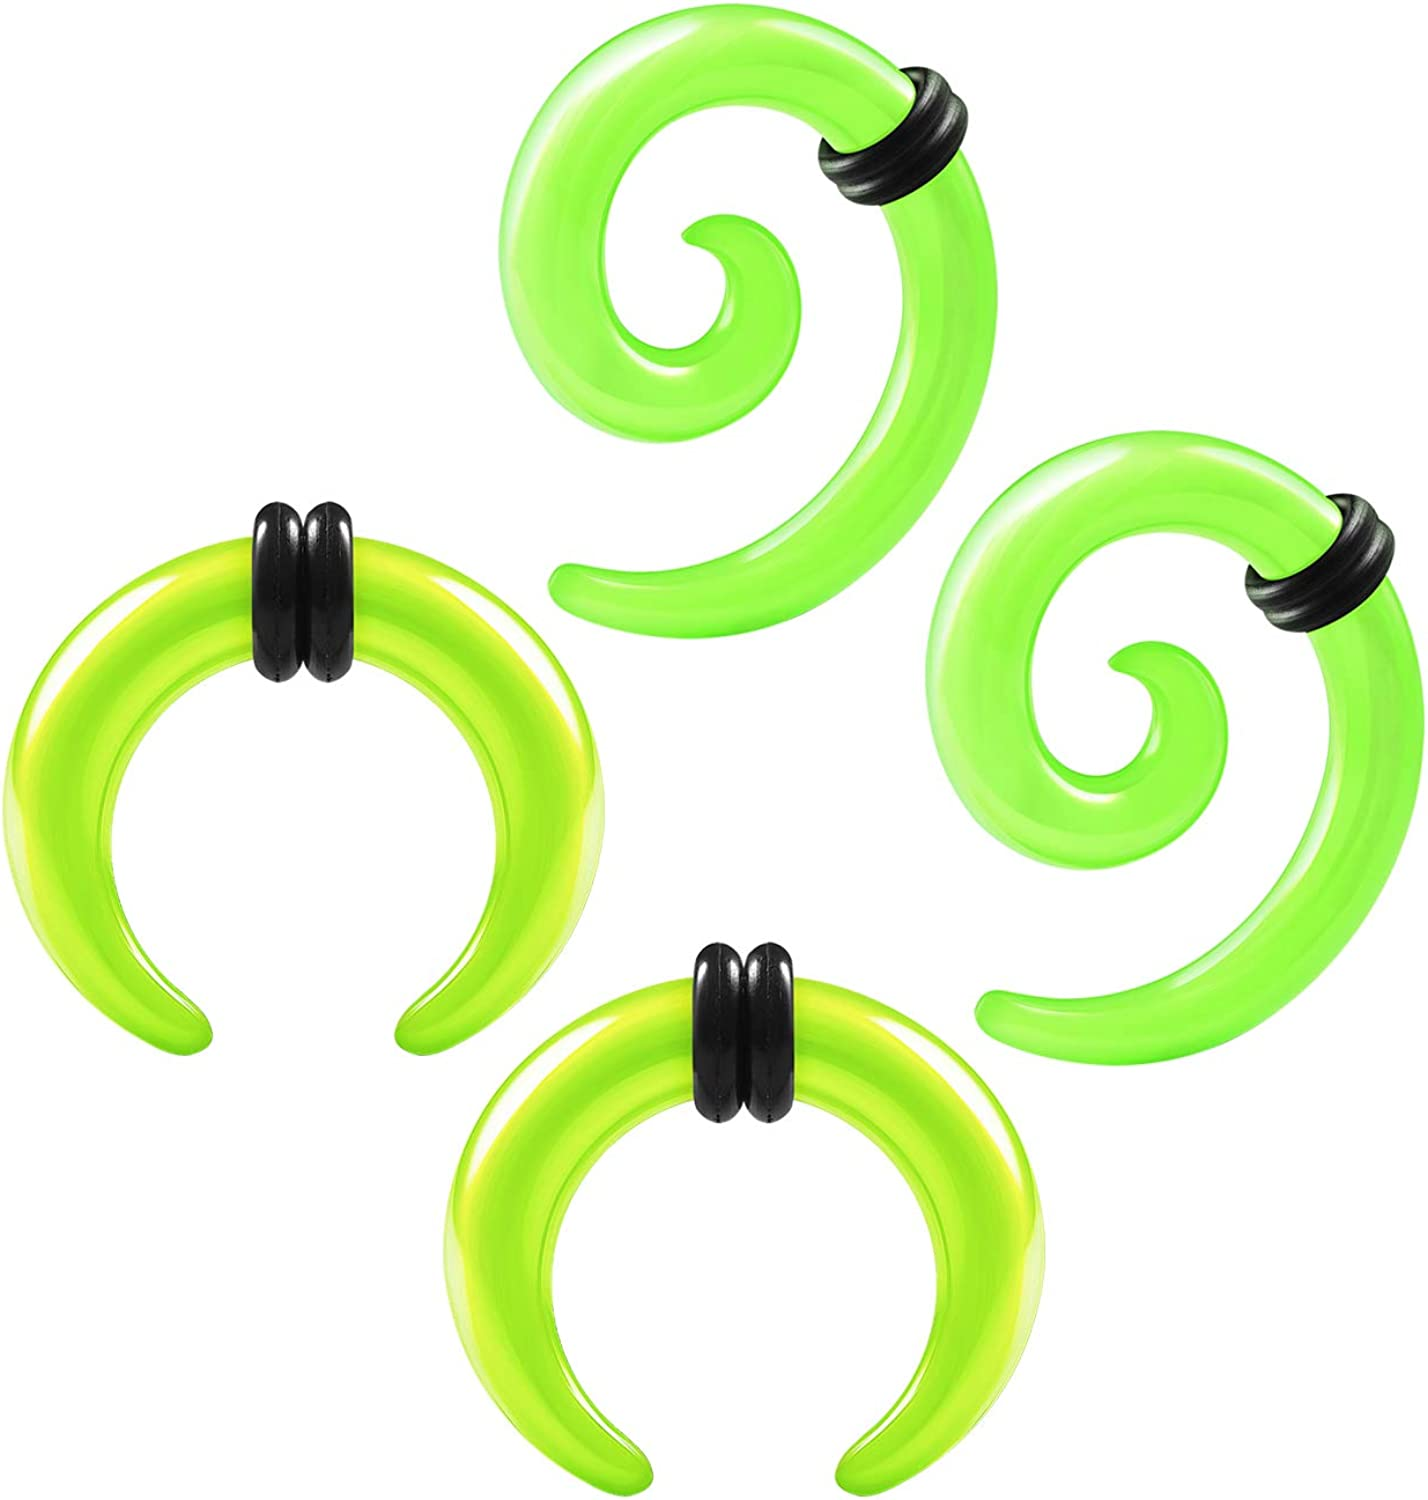 2 Pairs Acrylic Spiral Taper Expander Piercing Jewelry Ear Pincher O-Rings Stretching Earring Plugs Gauges